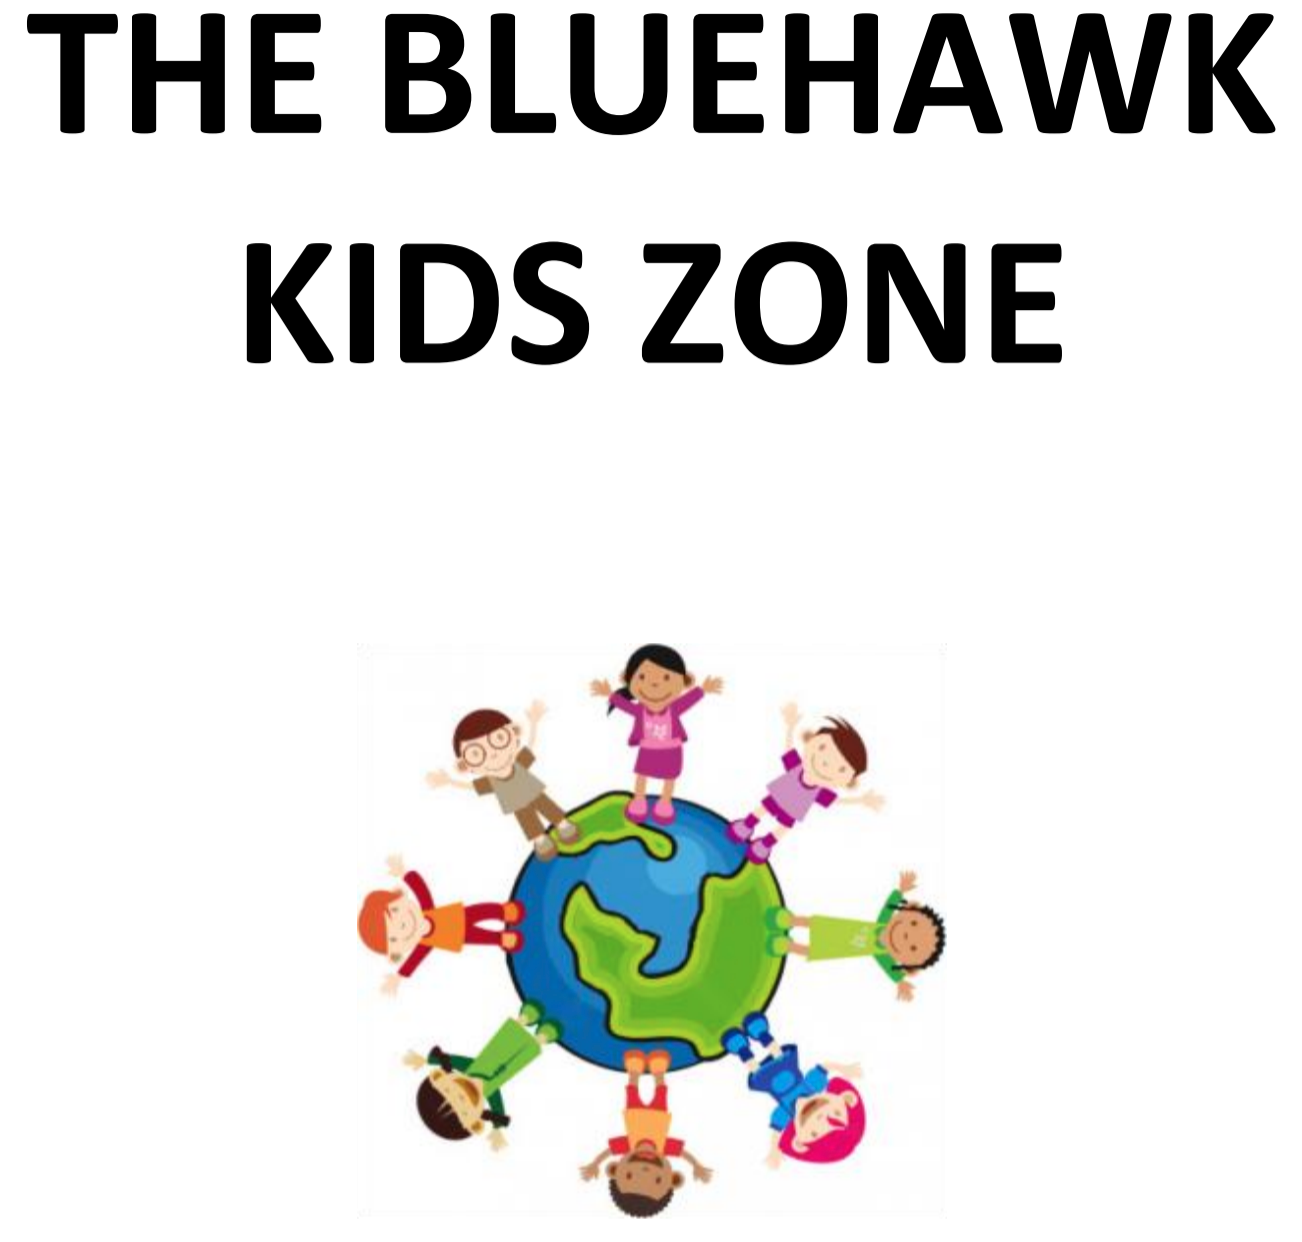 The Blue Hawk Kids Zone